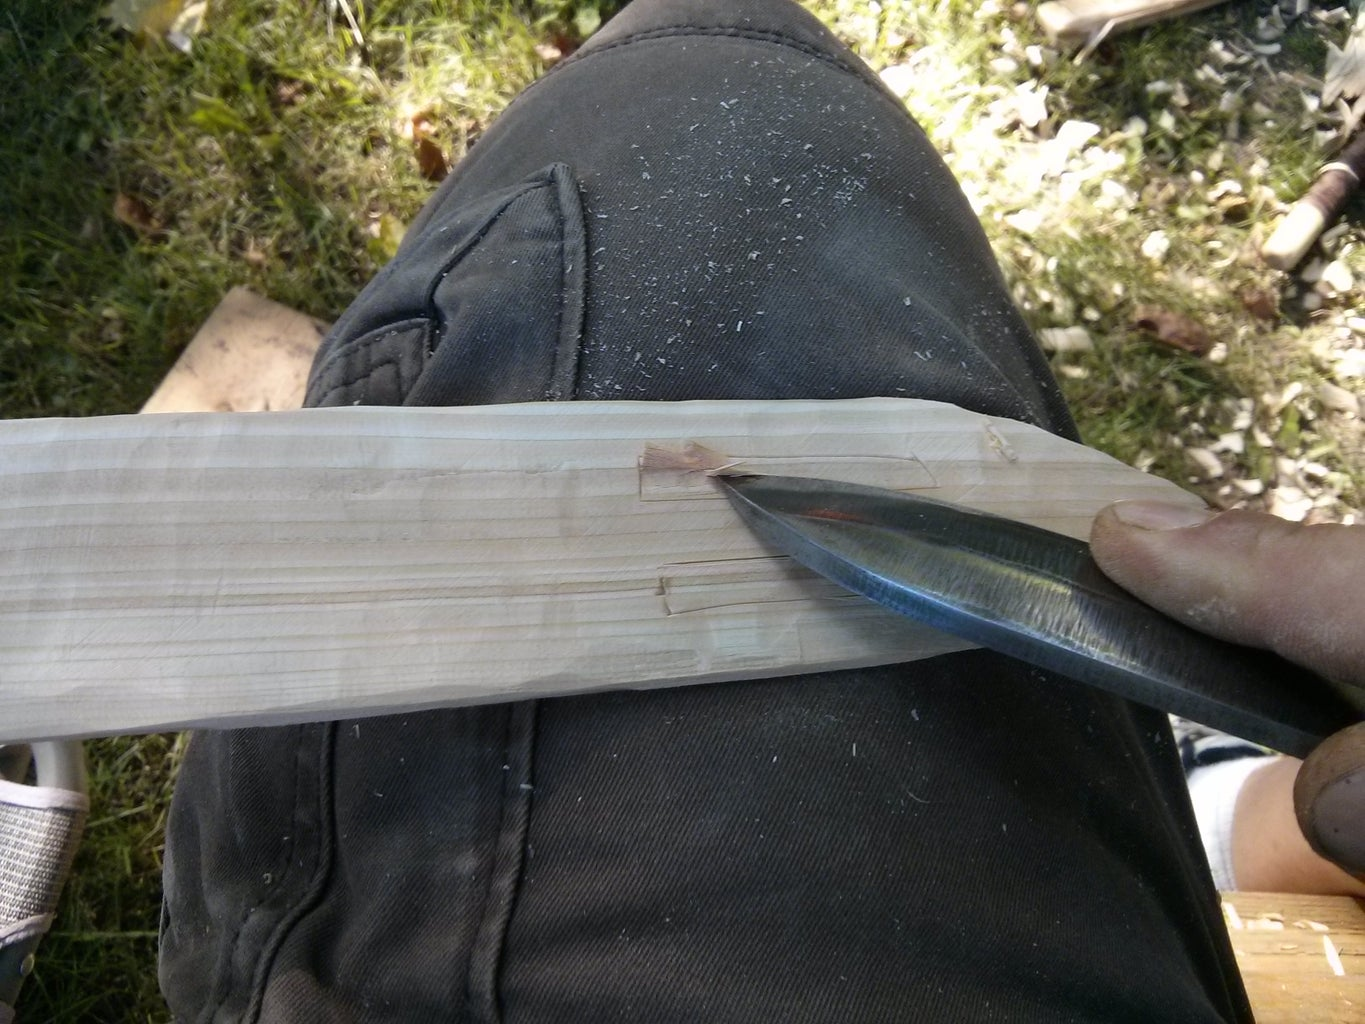 Carving the String Channel